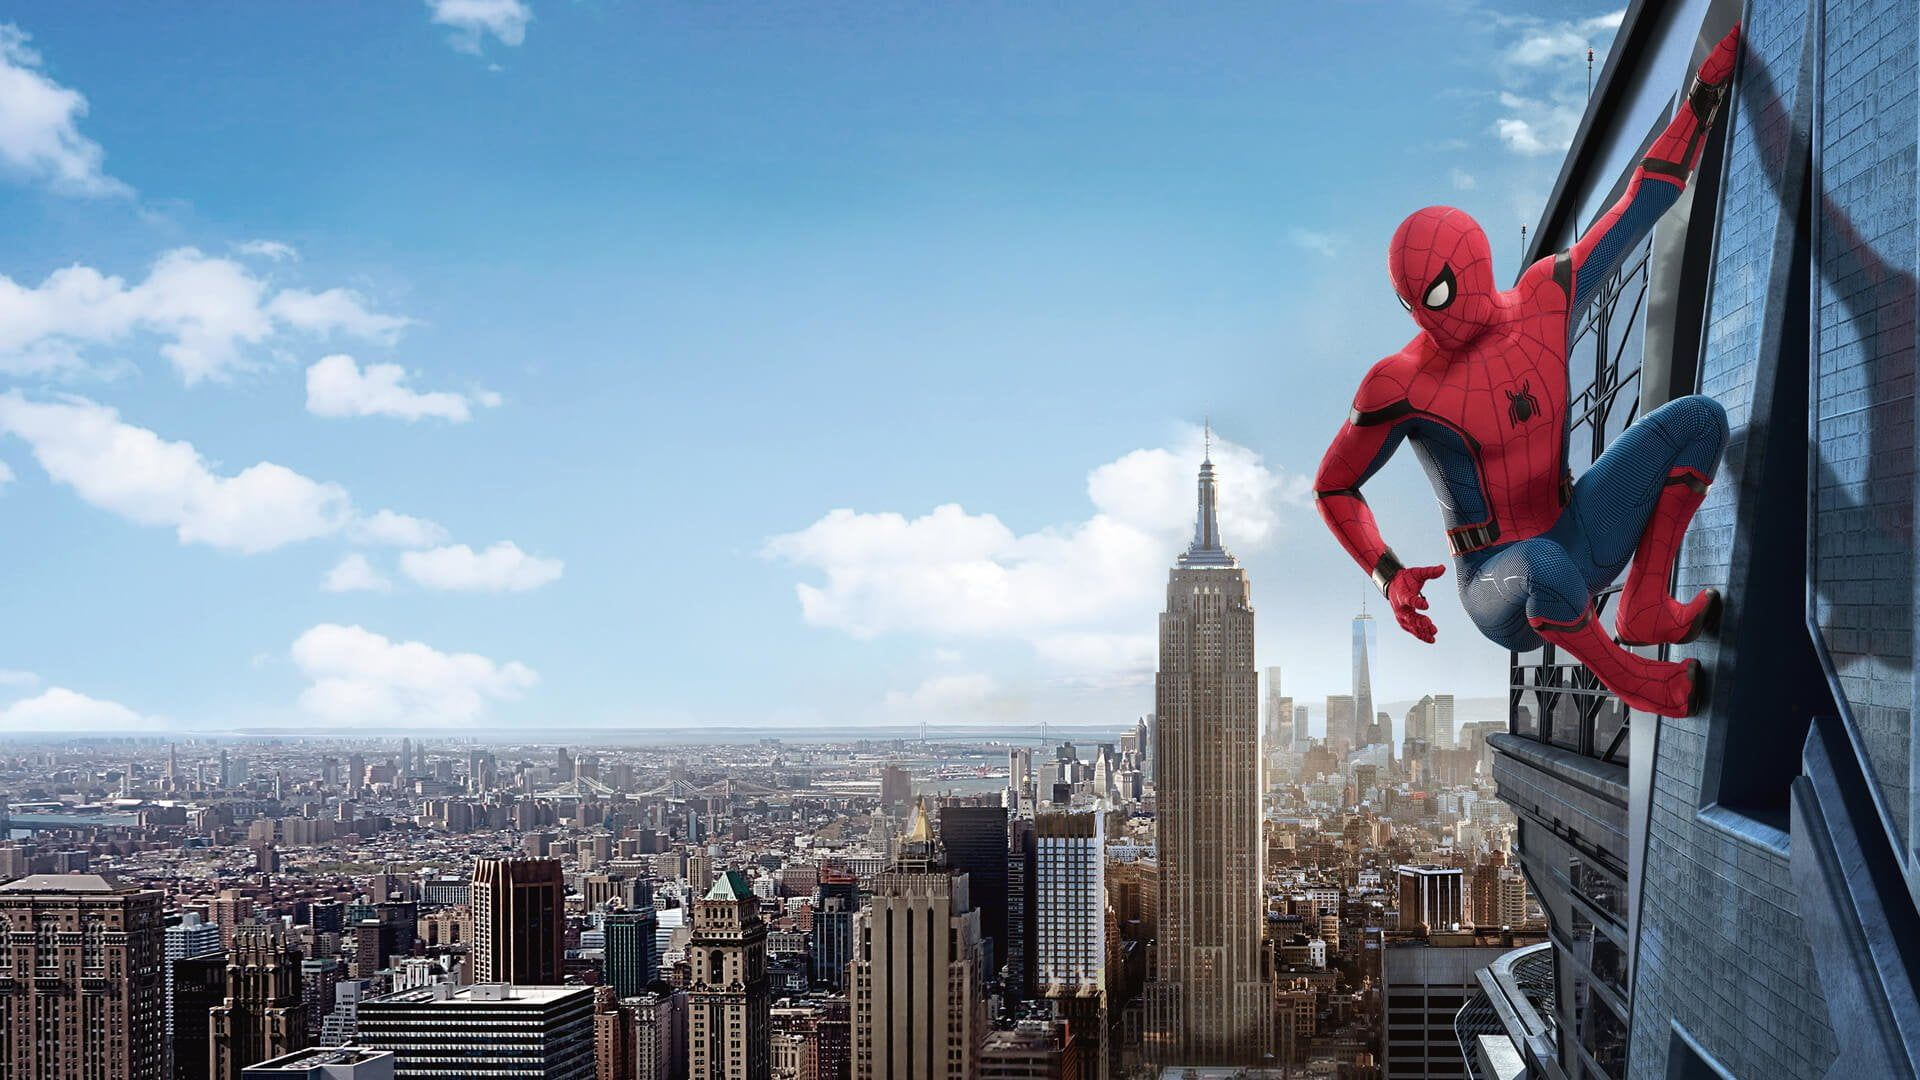 Marvel Spider Man Wallpaper Spider Man Homecoming 2017 Spider Man Marvel Comics New York City The In 2020 Spider Man Homecoming 2017 Spiderman Spiderman Homecoming